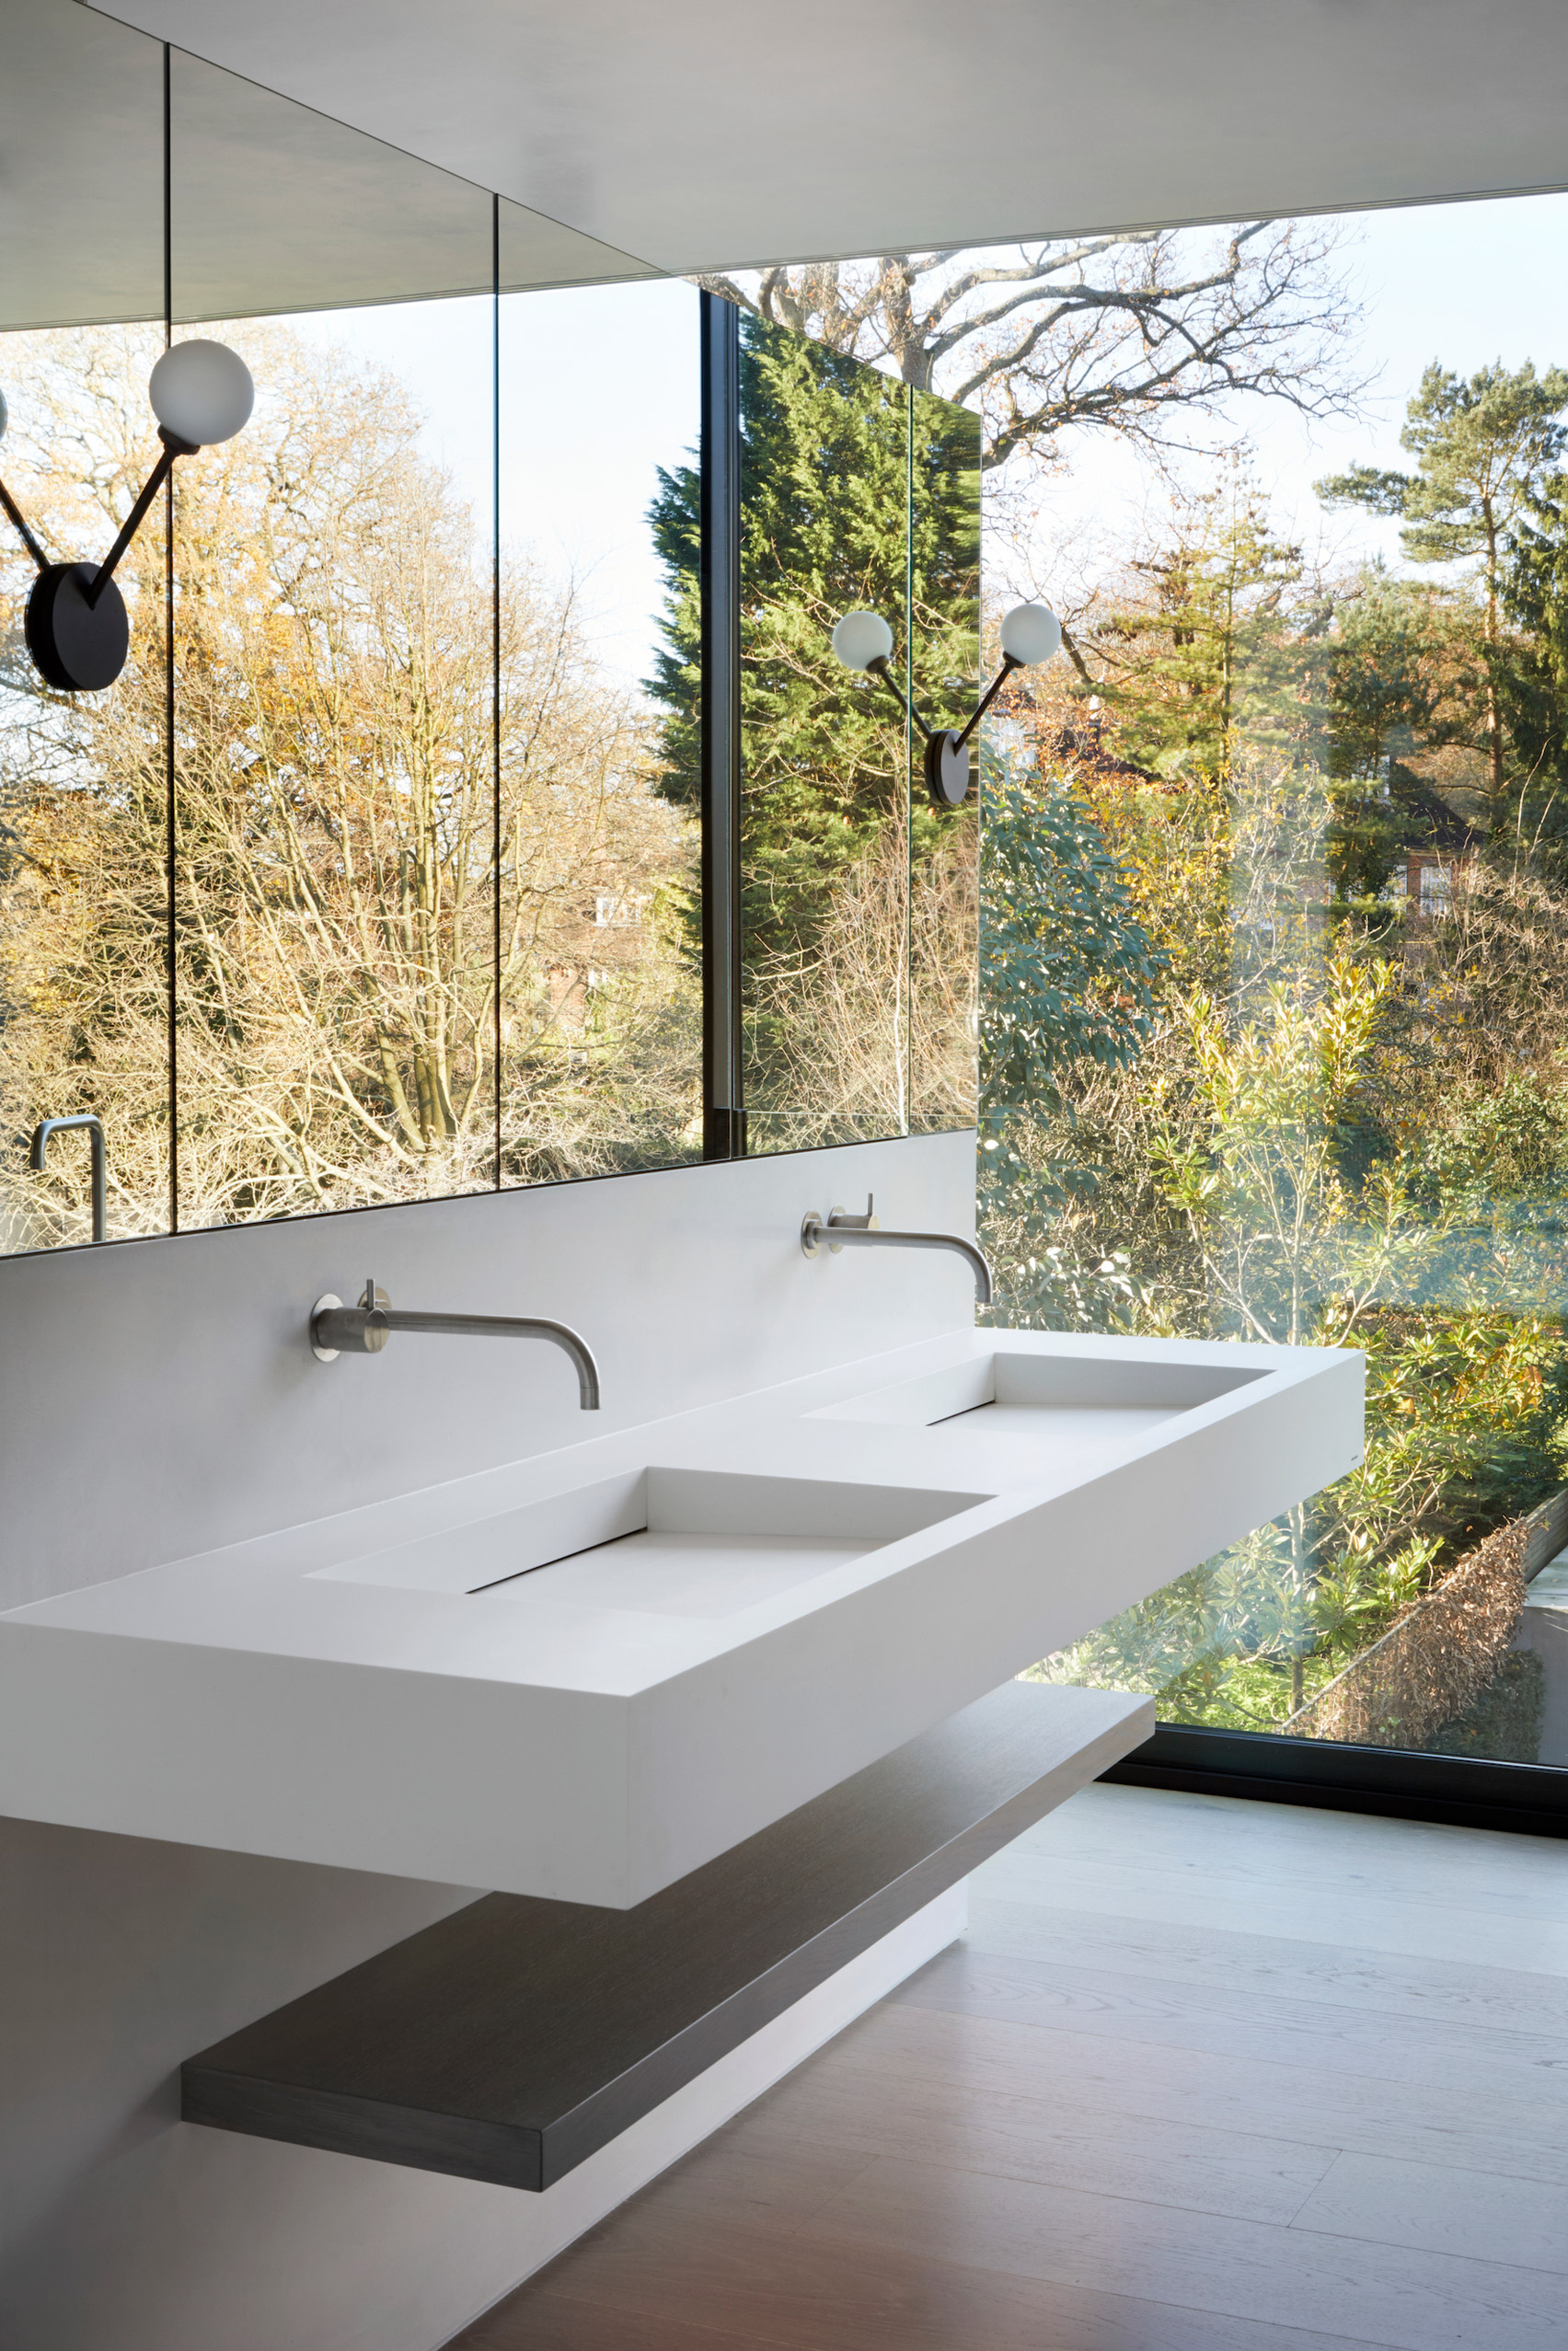 spa-like bathroom in Kenwood Lee House by Cousins & Cousins